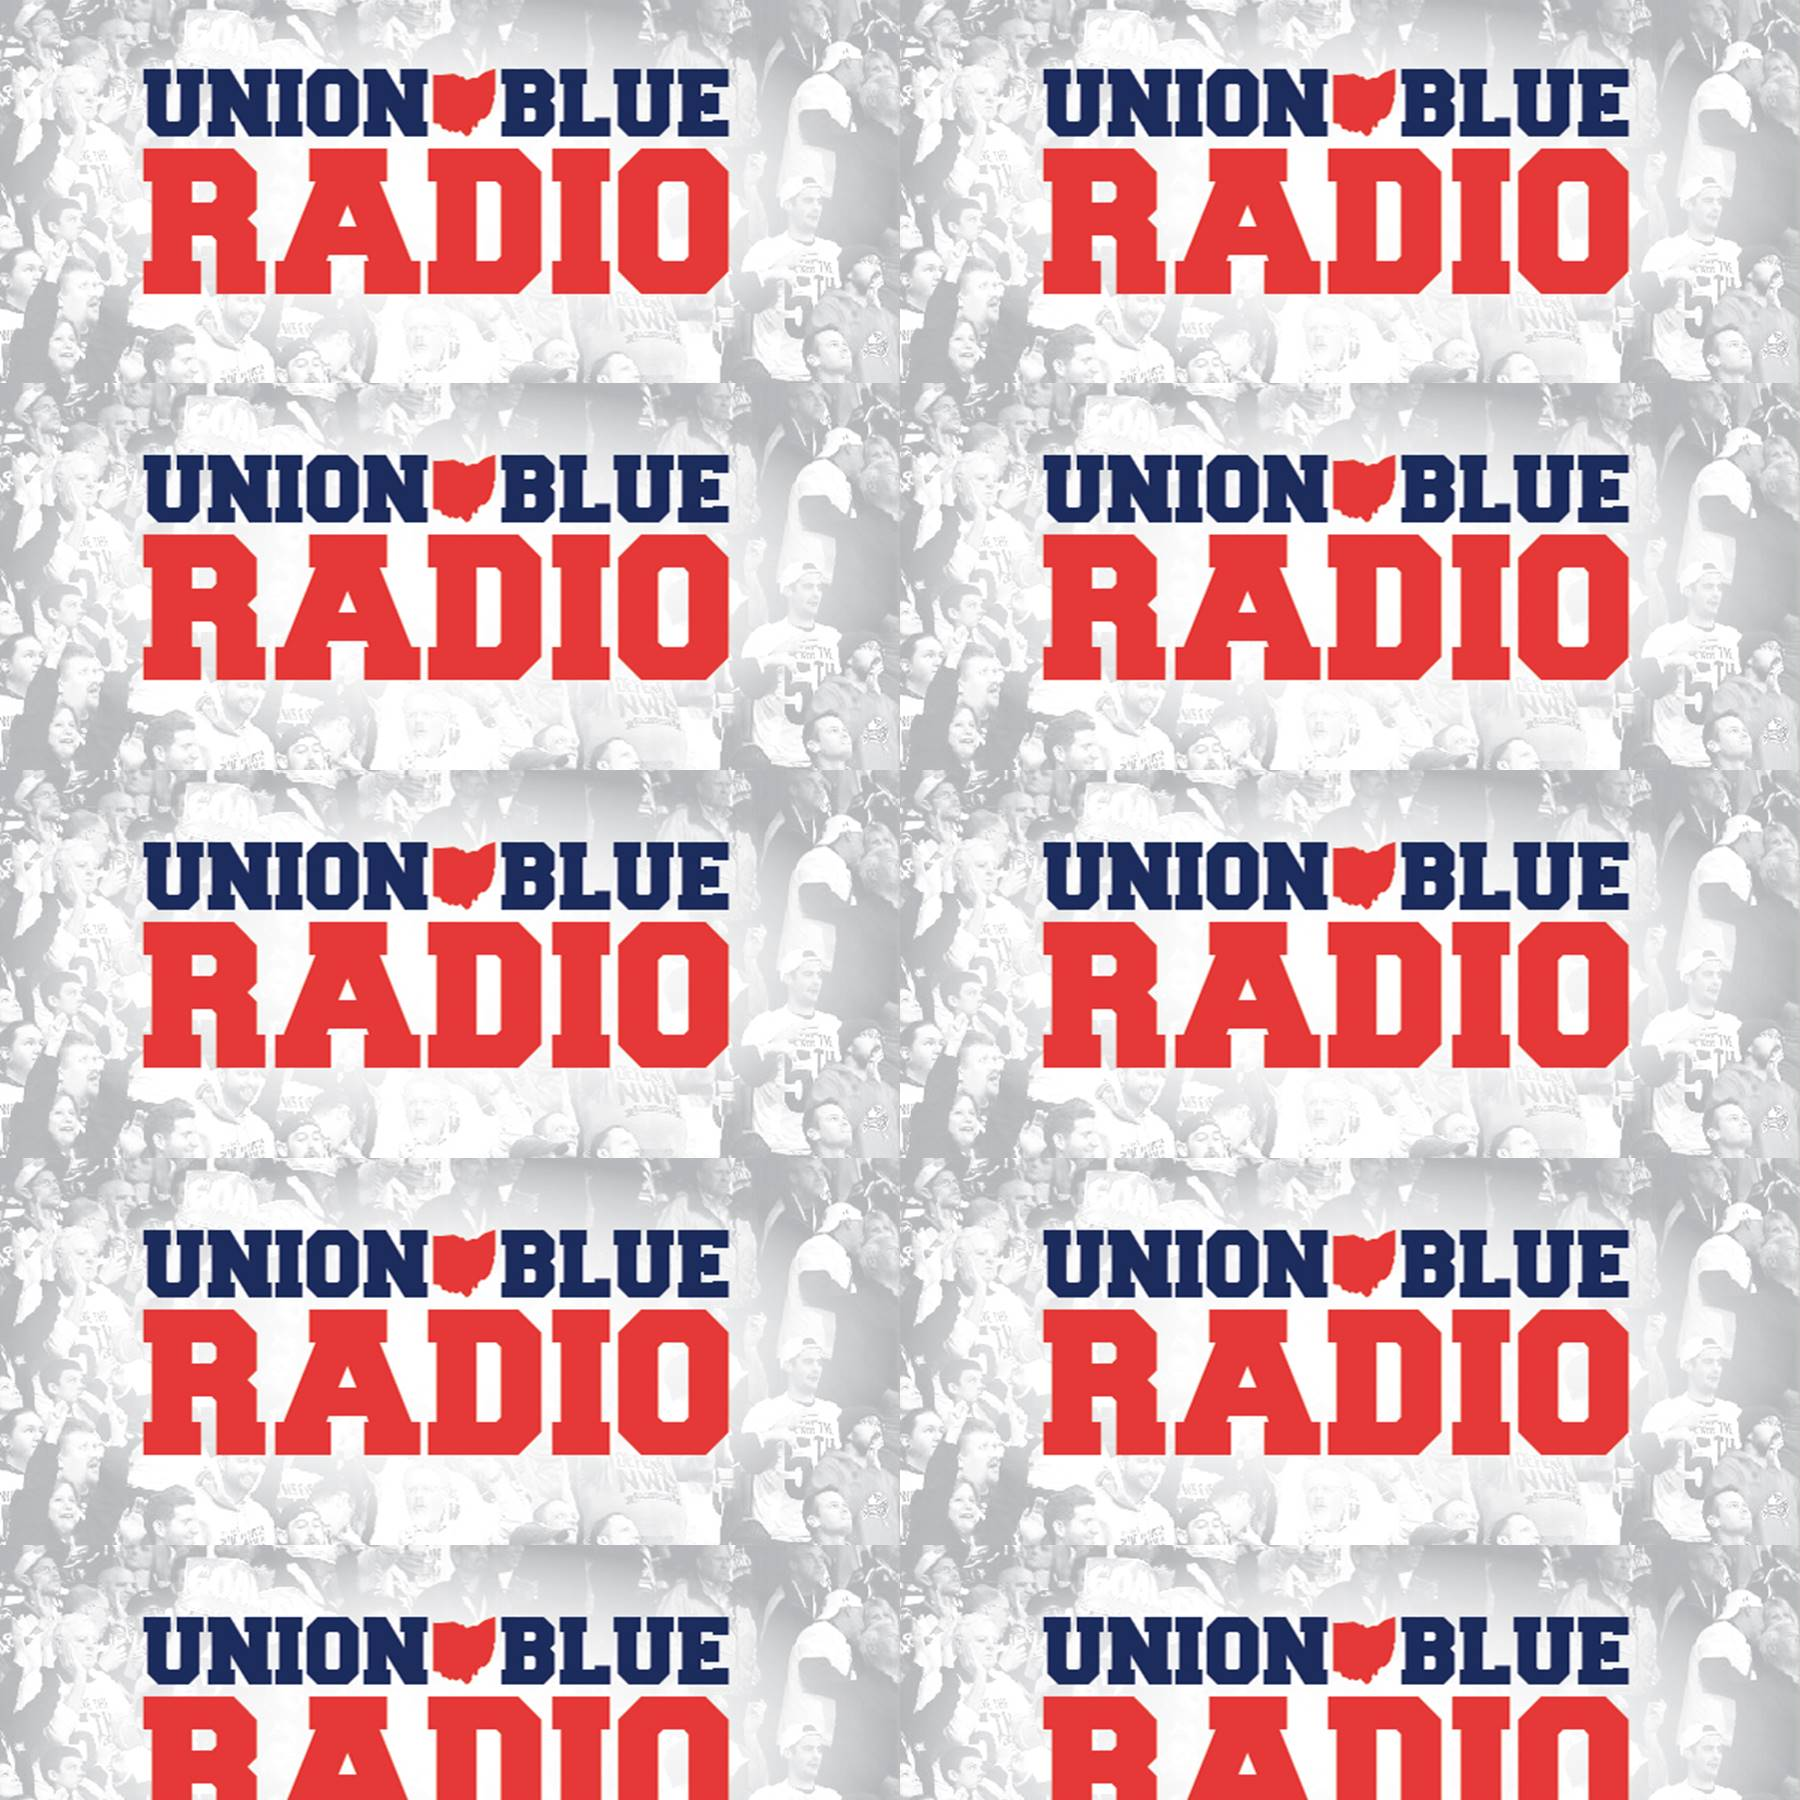 Union Blue Radio